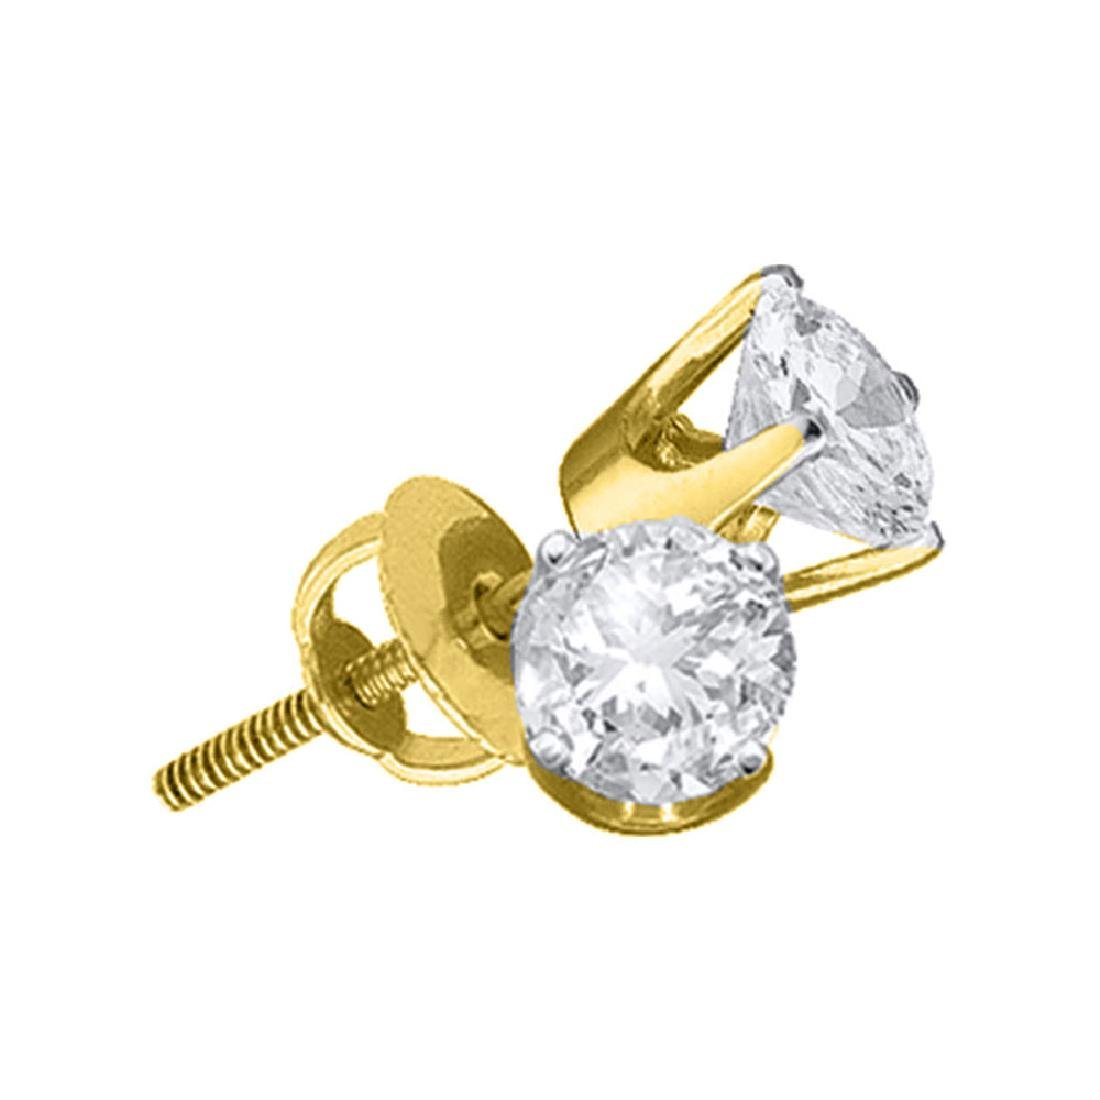 0.98 CTW Diamond Solitaire Stud Earrings 14KT Yellow